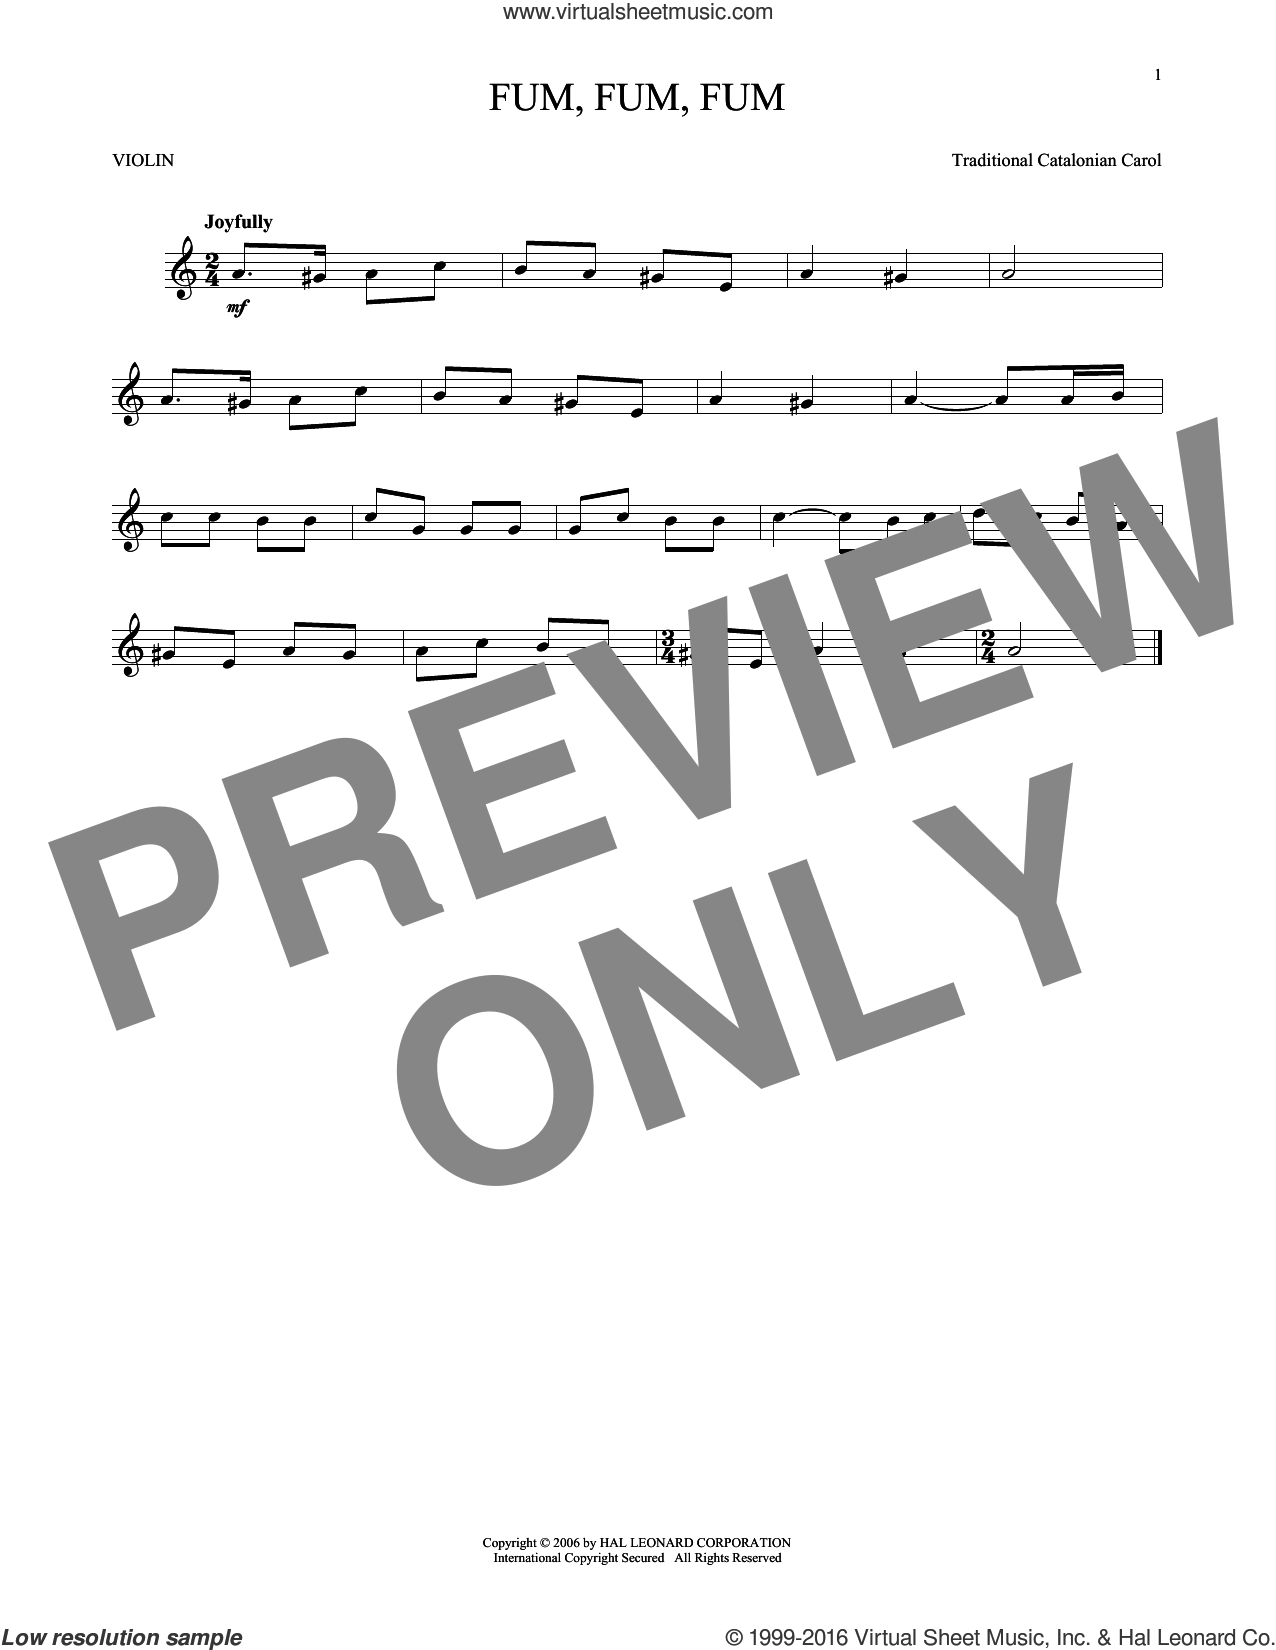 Fum, Fum, Fum sheet music for violin solo. Score Image Preview.